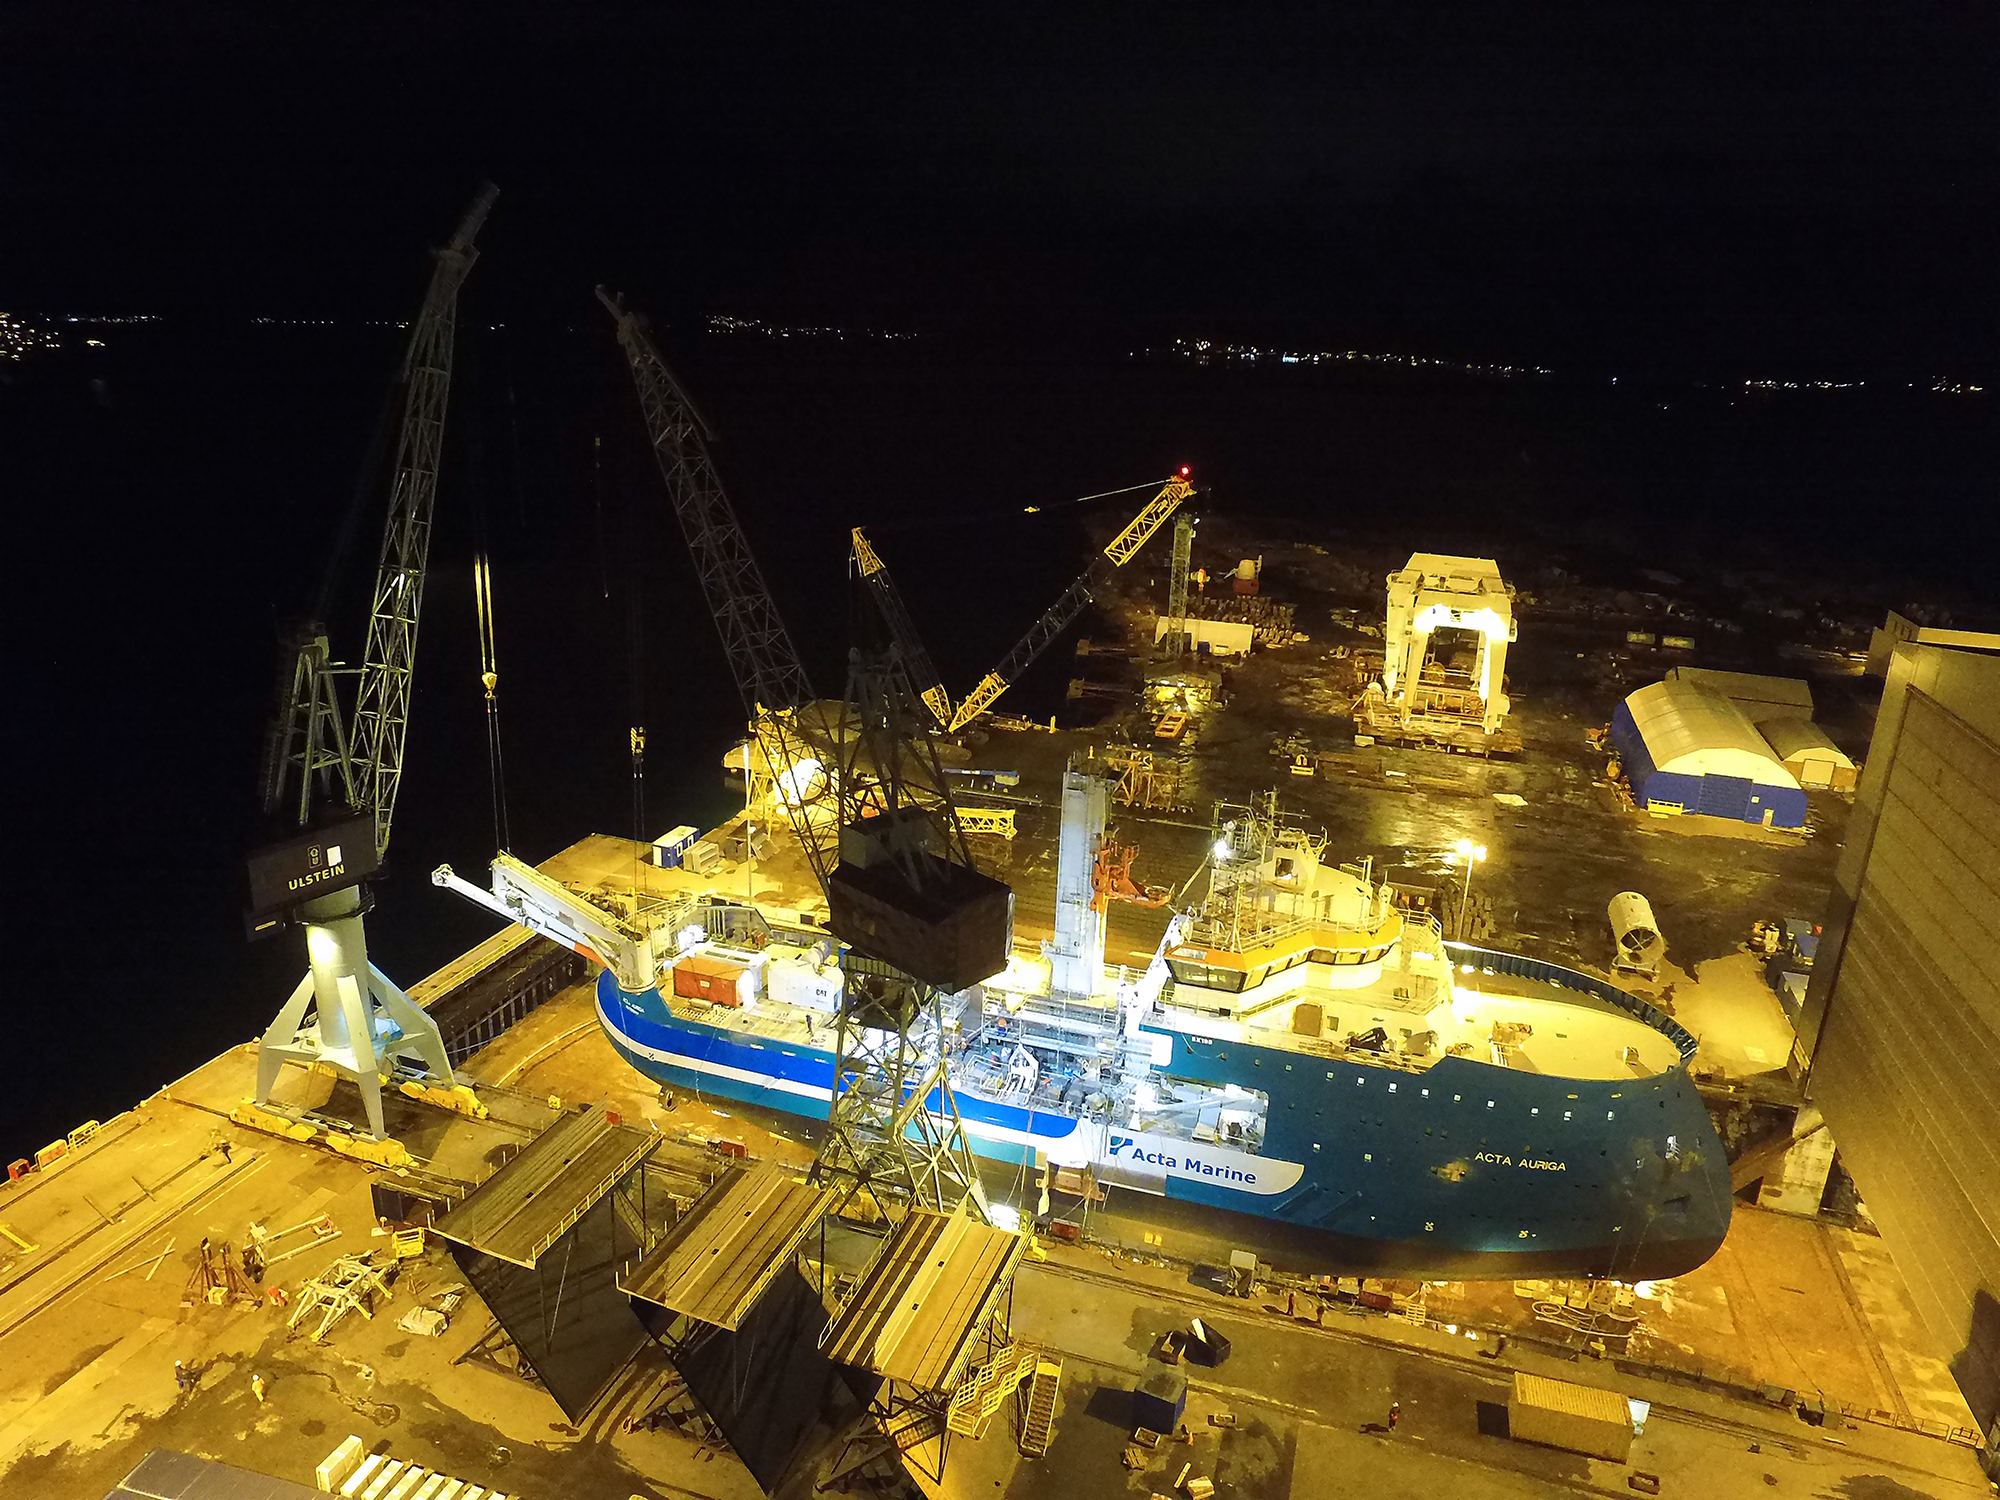 The SMST crane and tower being installed on the Acta Auriga. (Photo: Benny Banen, Acta Marine)